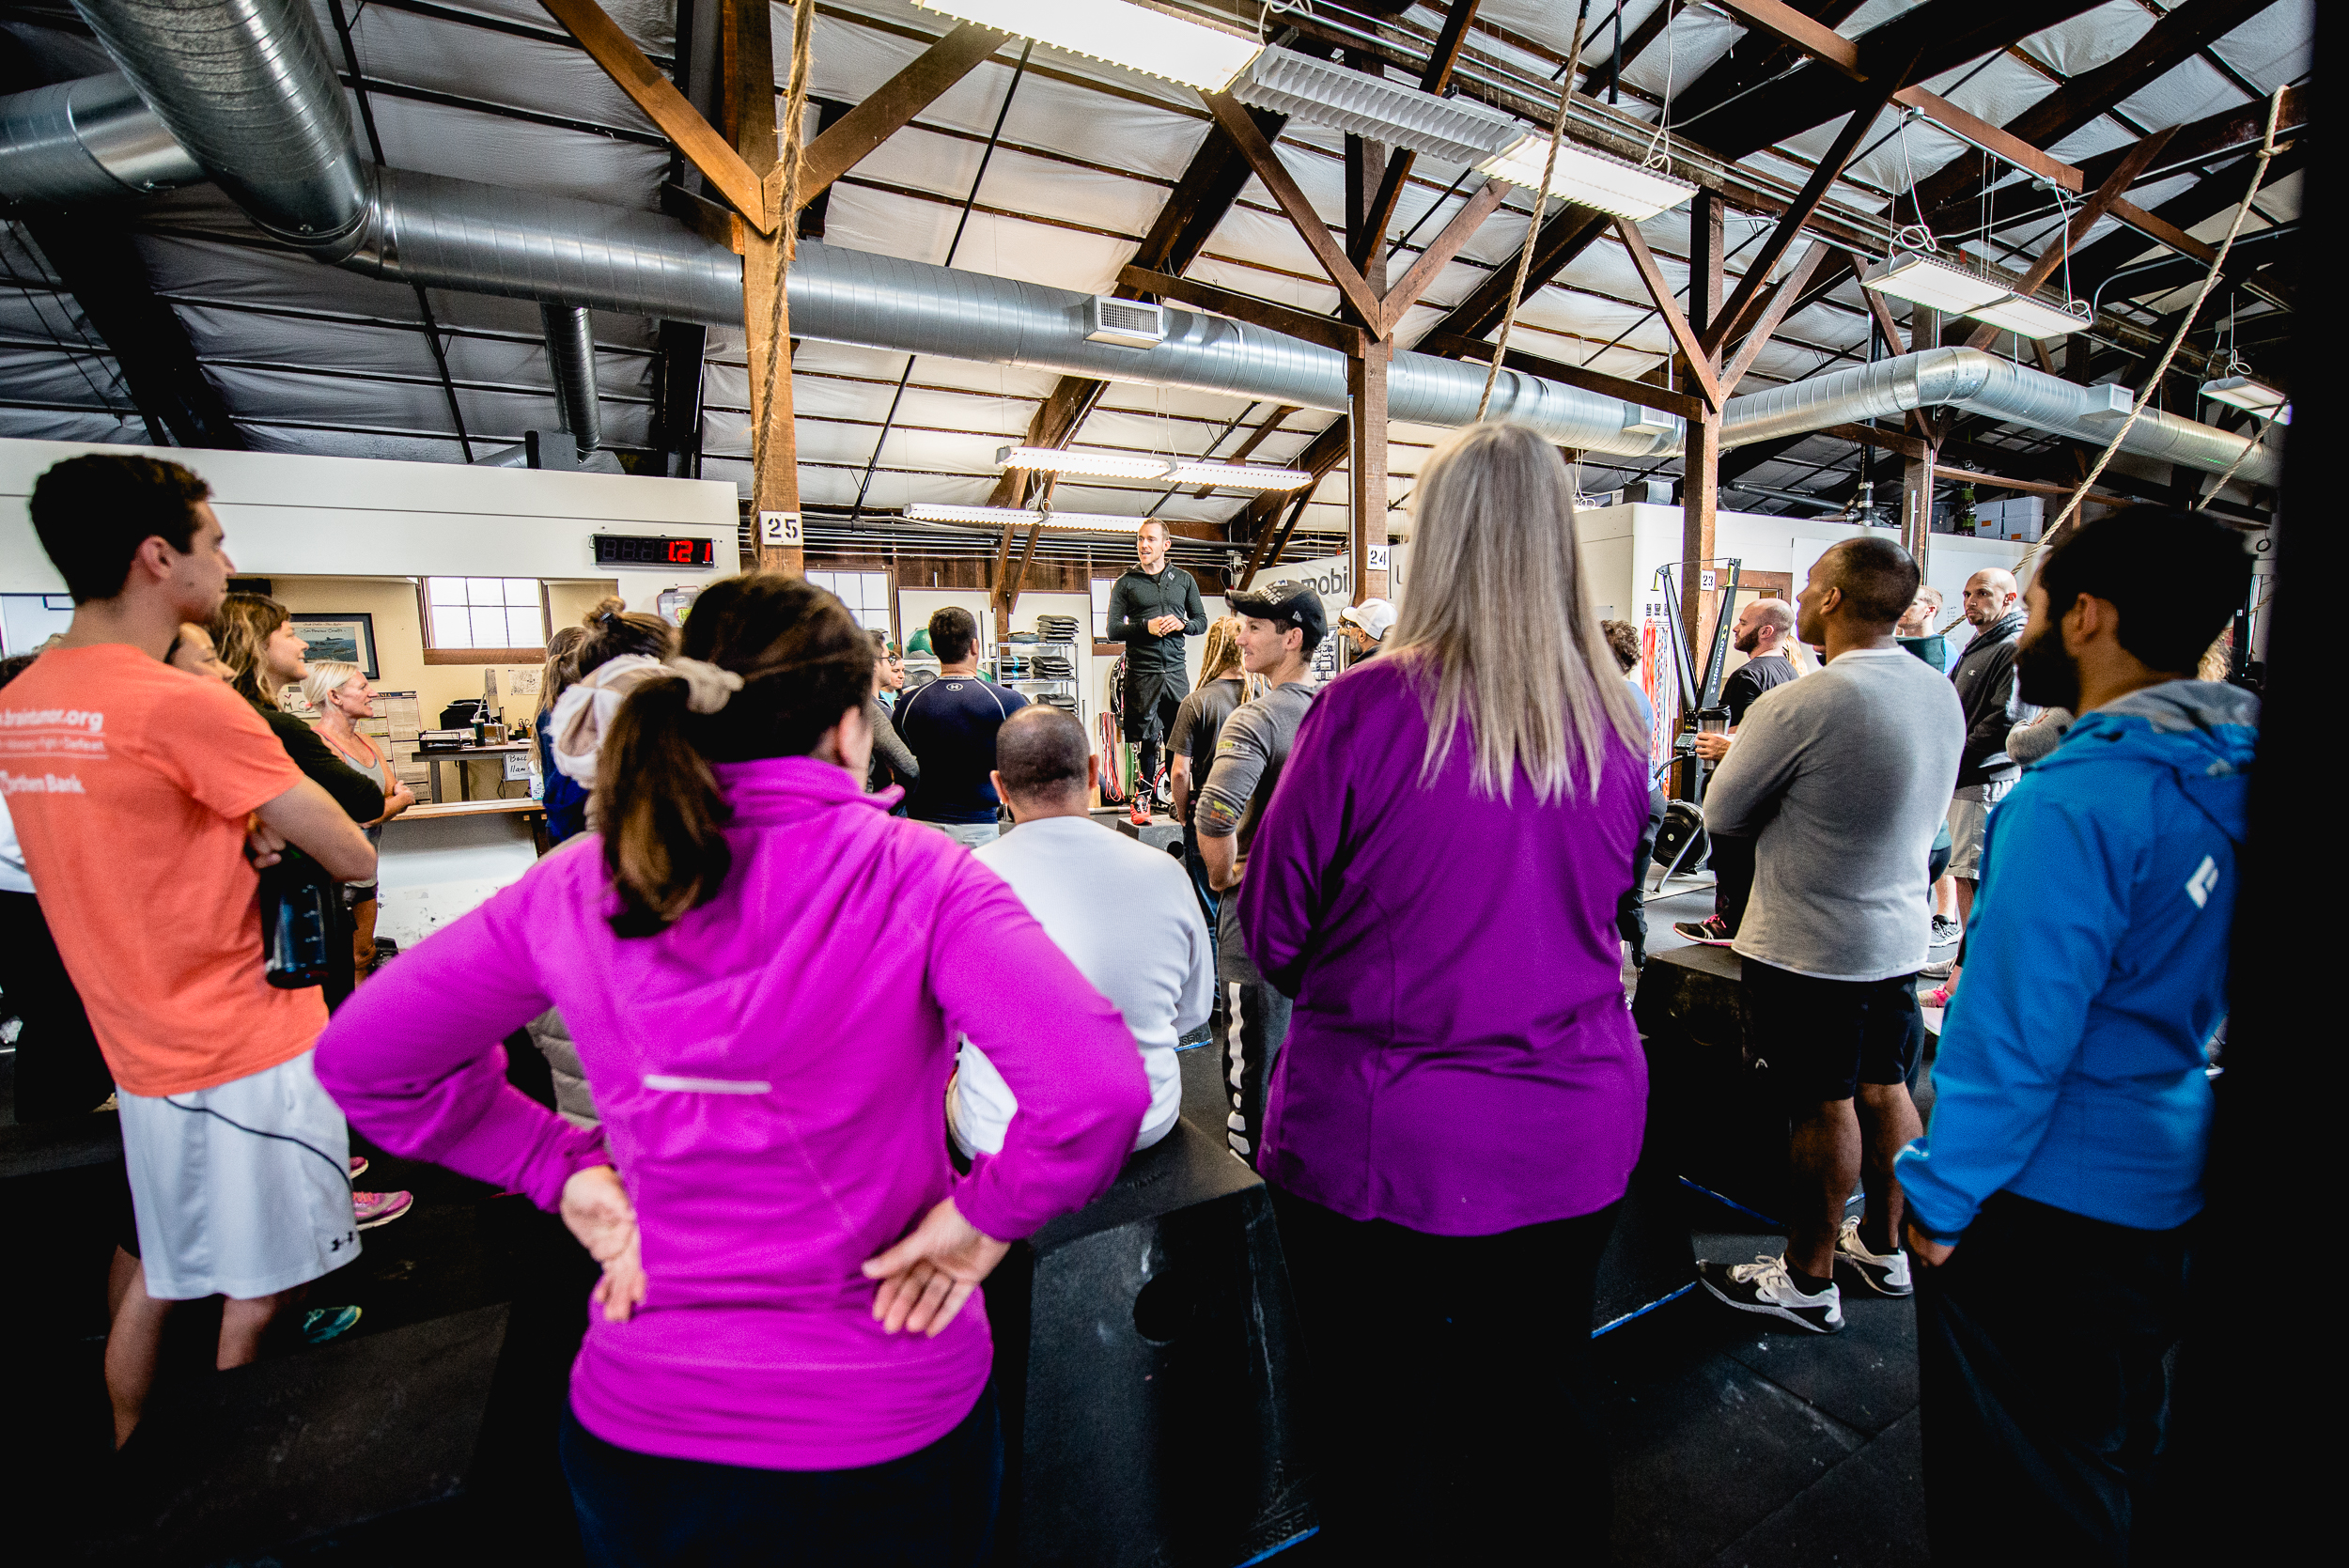 2017 Adaptive Athletic Clinic, Photo Alessio Neri-001-4.jpg